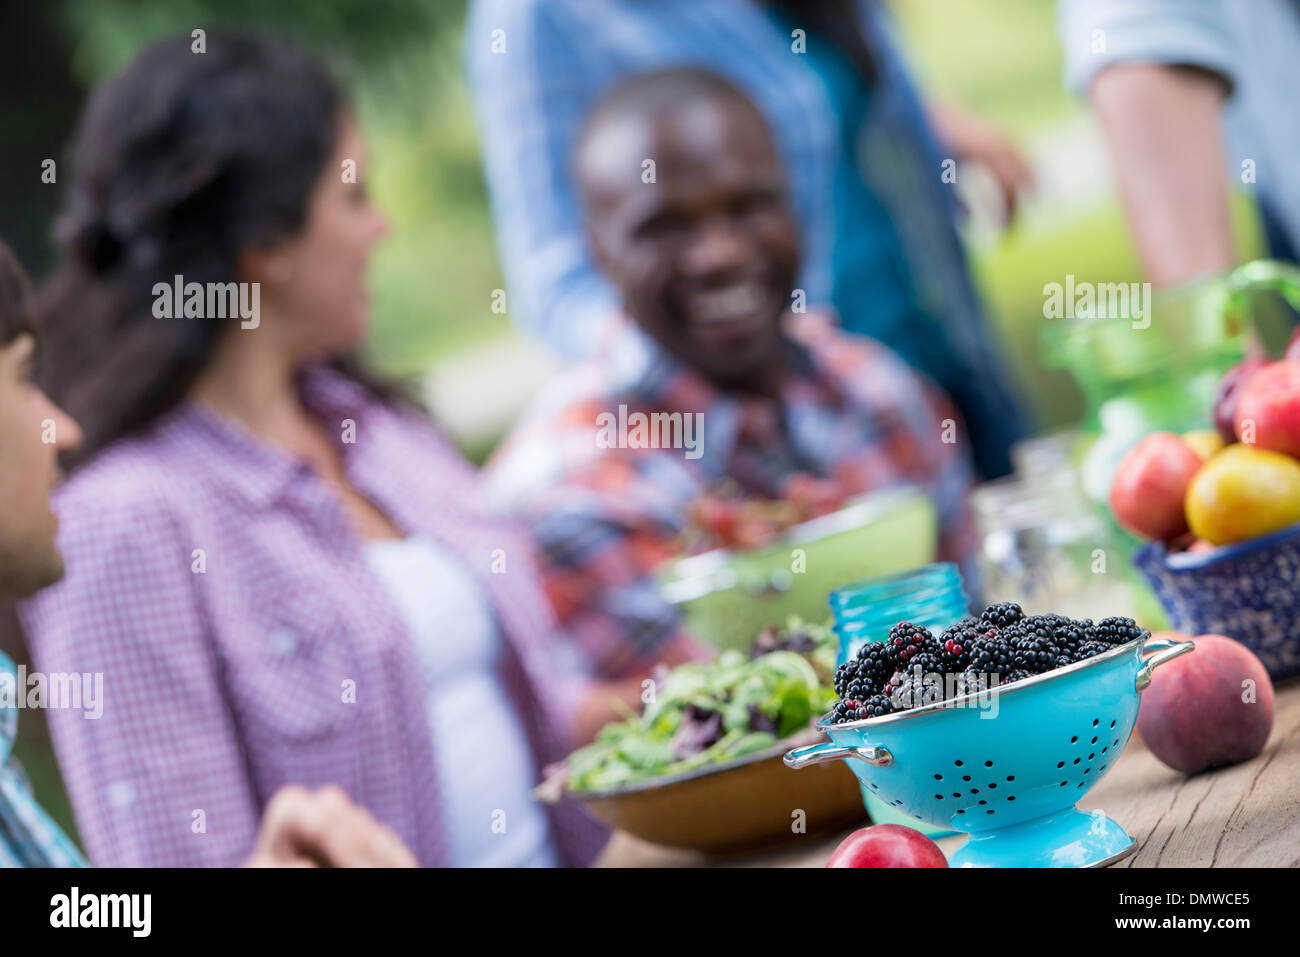 A summer party outdoors. A group of friends at a table. - Stock Image